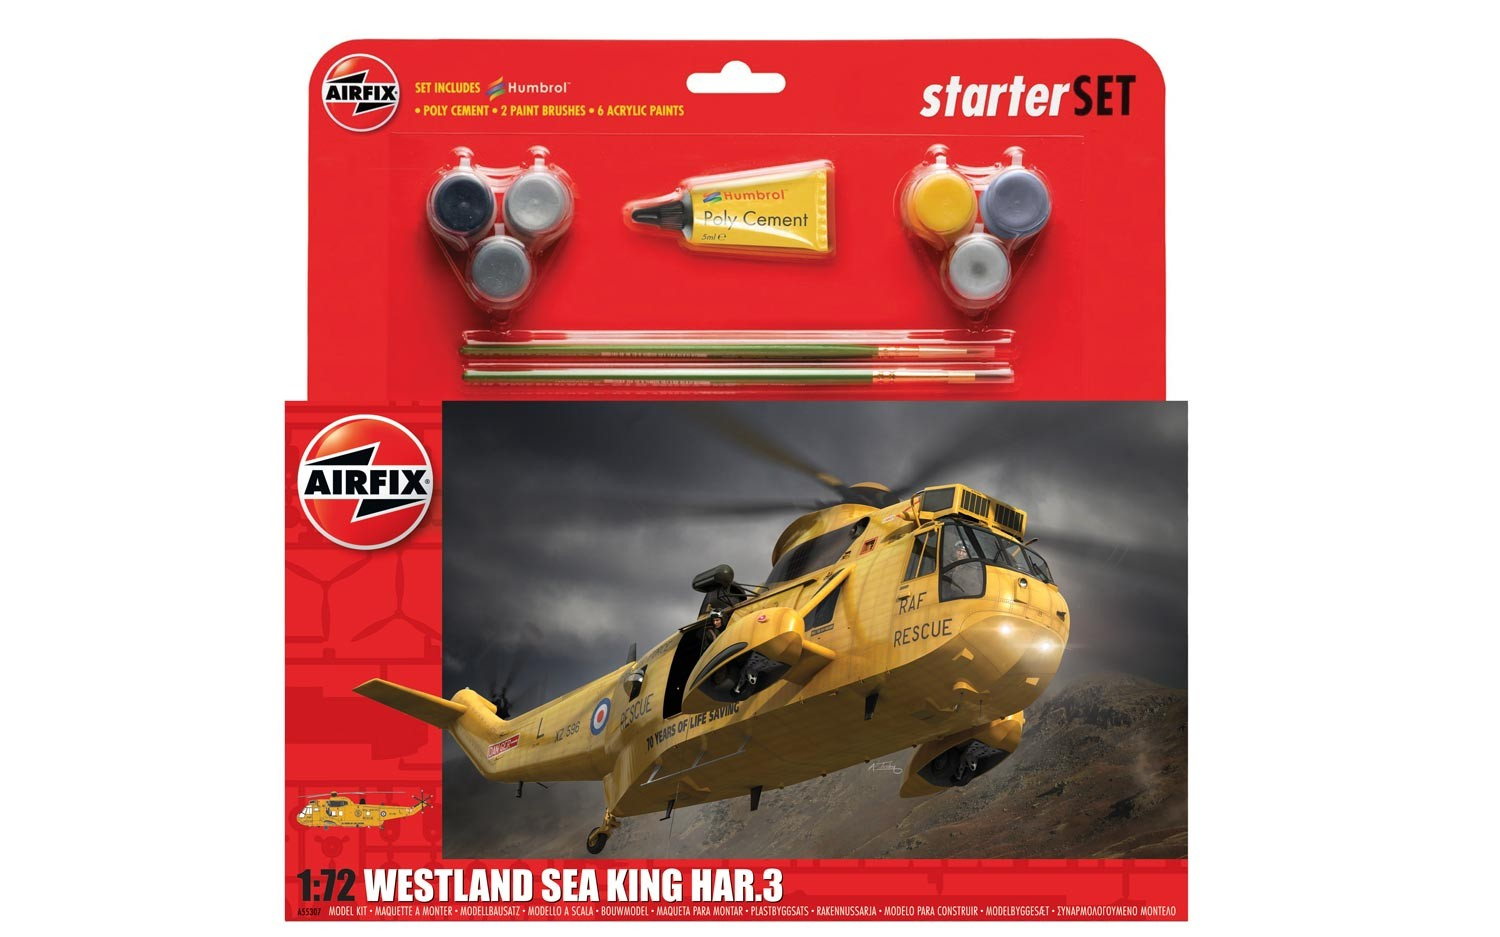 Airfix Westland Sea King HAR.3 Starter Set 1:72